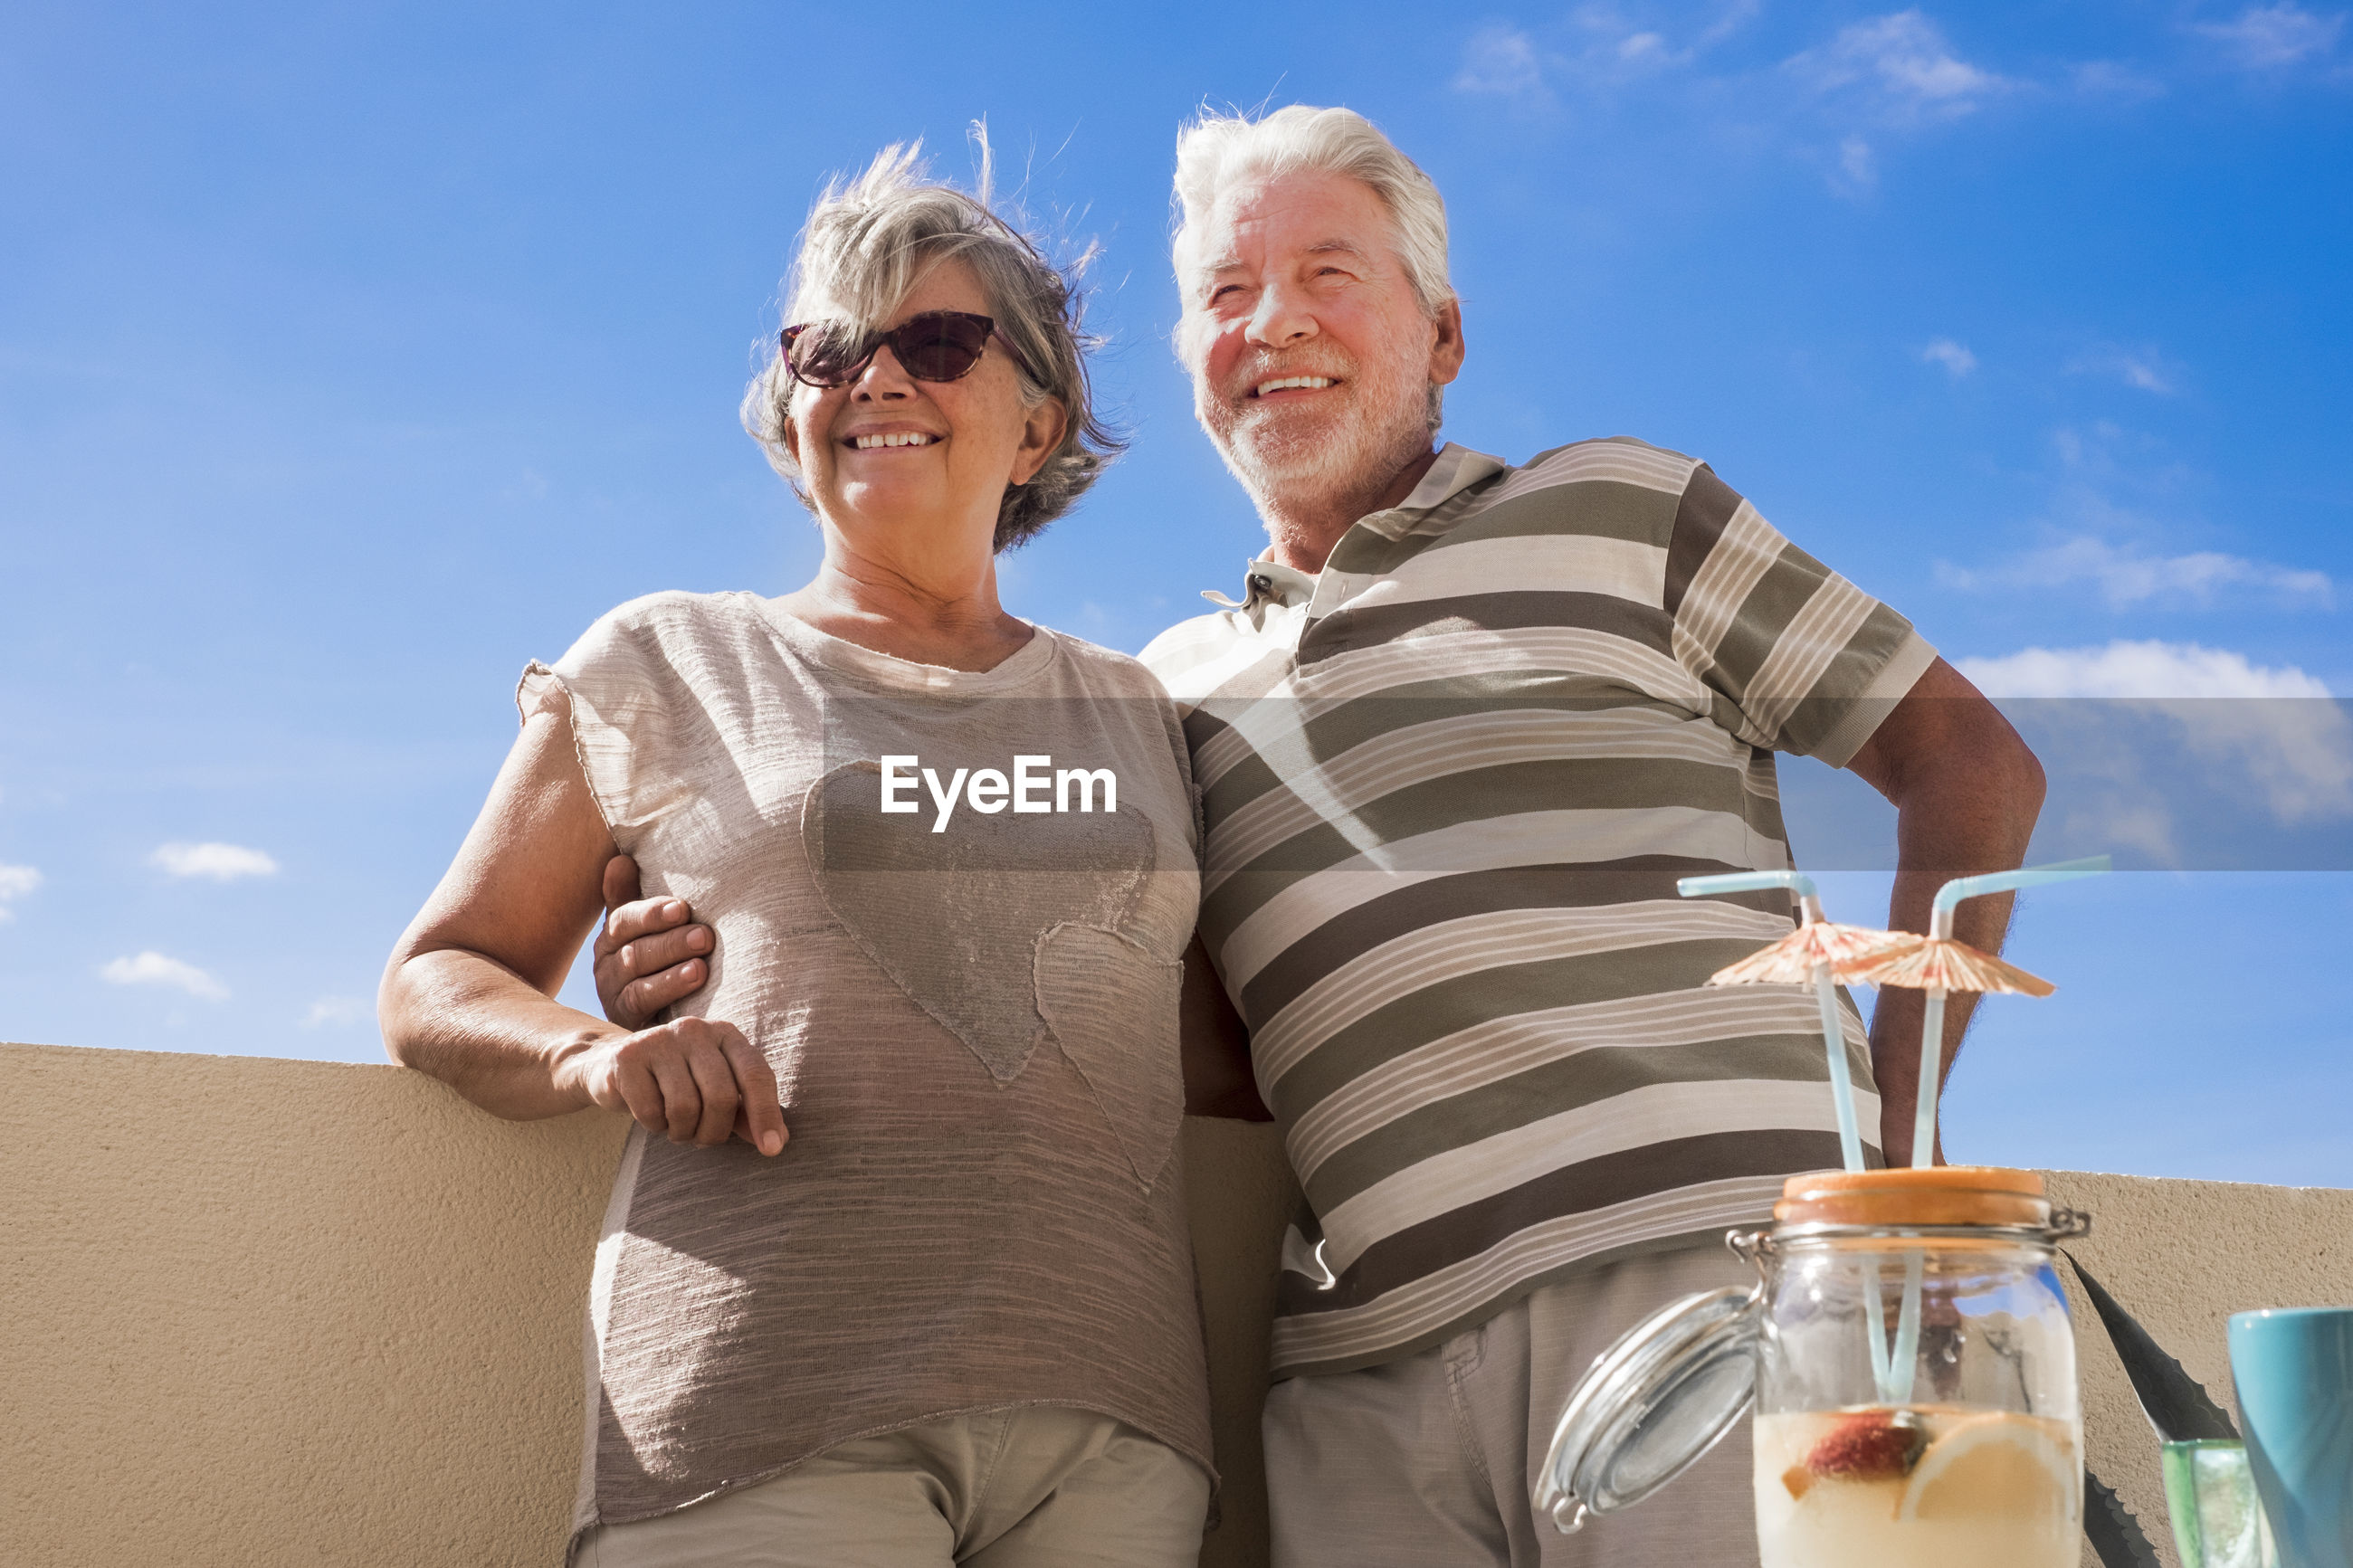 Low angle view of senior couple smiling while standing against blue sky